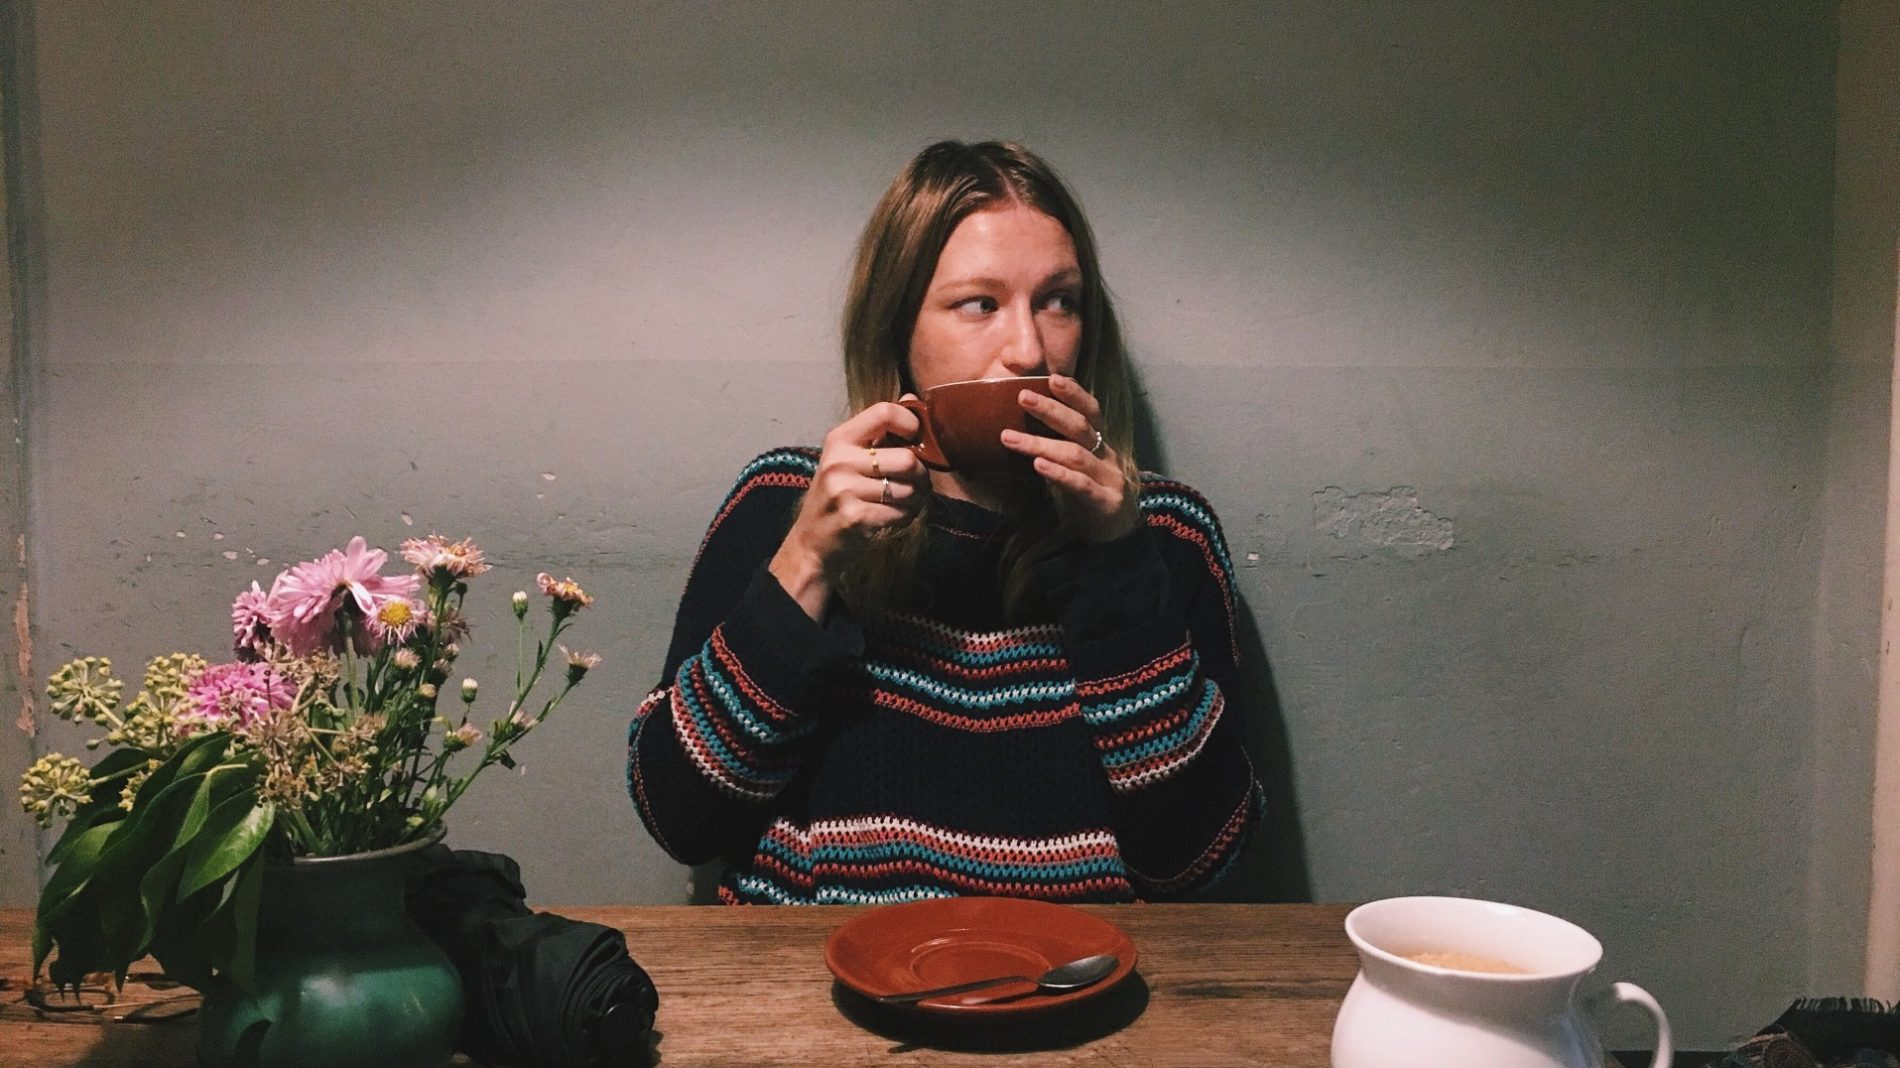 Young-person-drinking-tea-at-home